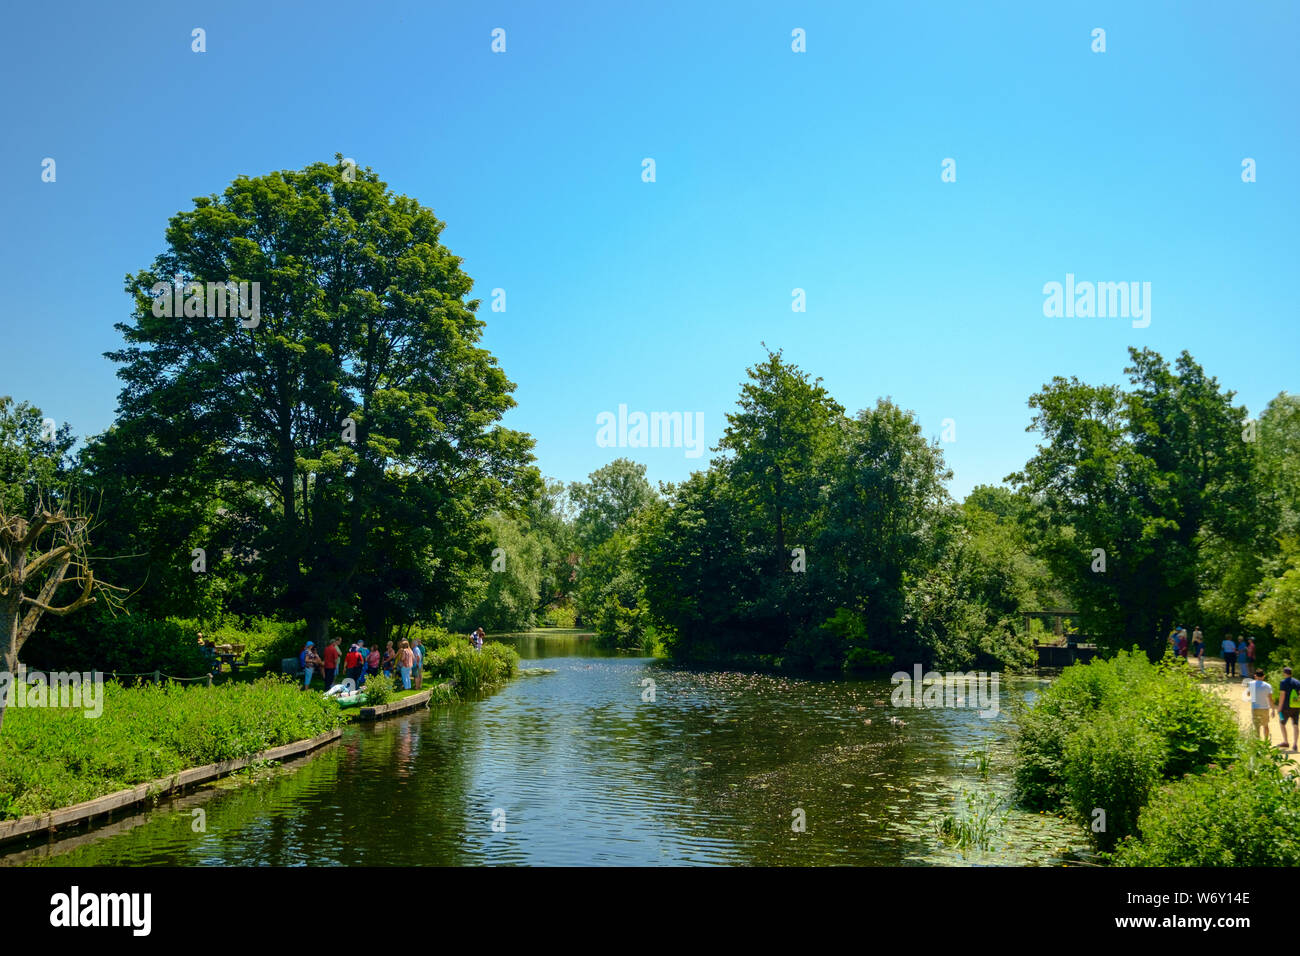 Site of Constable's Scene of a Navigable River, River Stour, UK Stock Photo